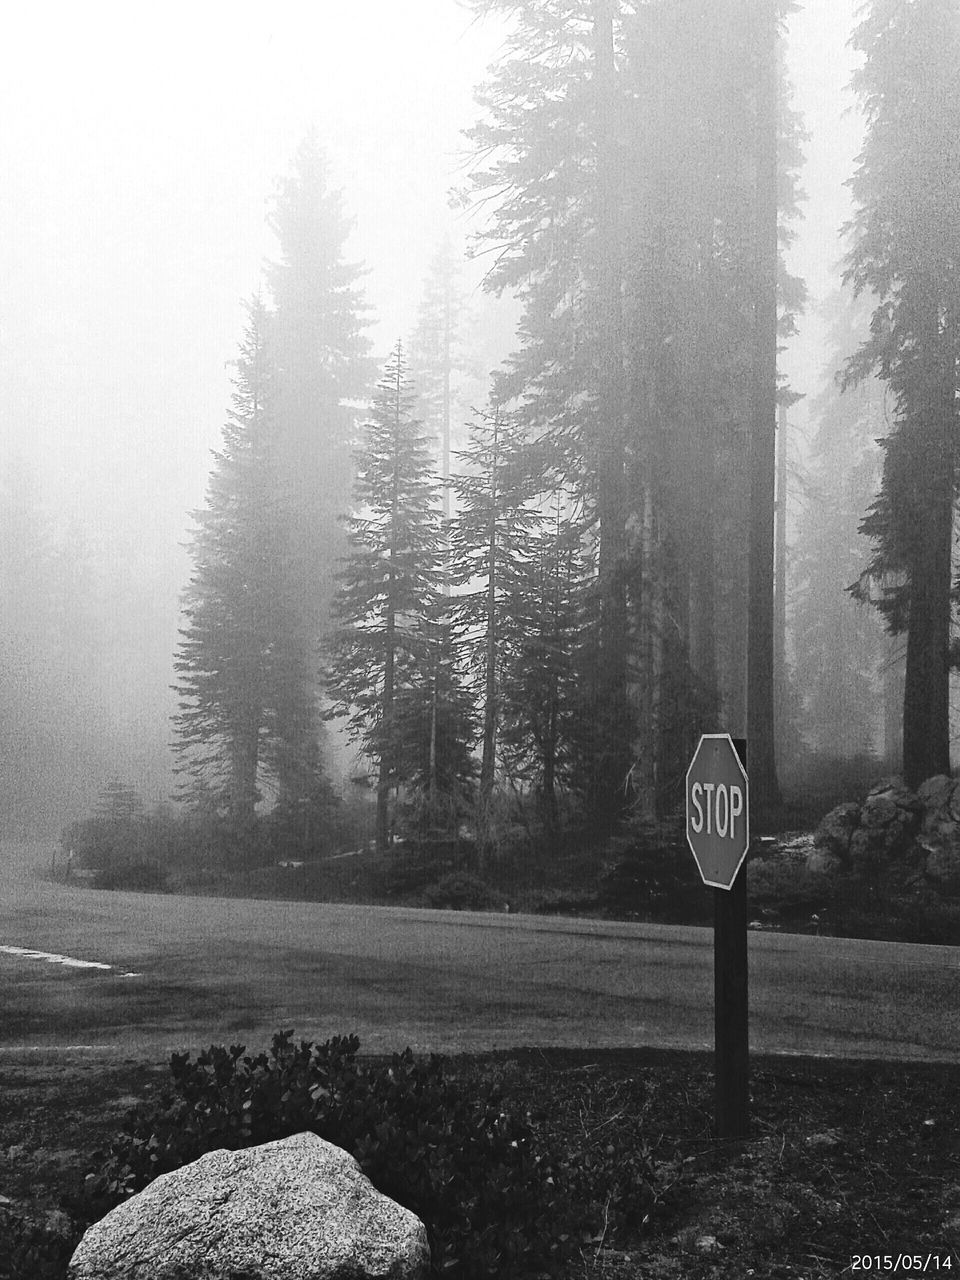 tree, communication, road sign, nature, forest, tranquility, no people, tranquil scene, beauty in nature, landscape, day, speed limit sign, growth, scenics, outdoors, sky